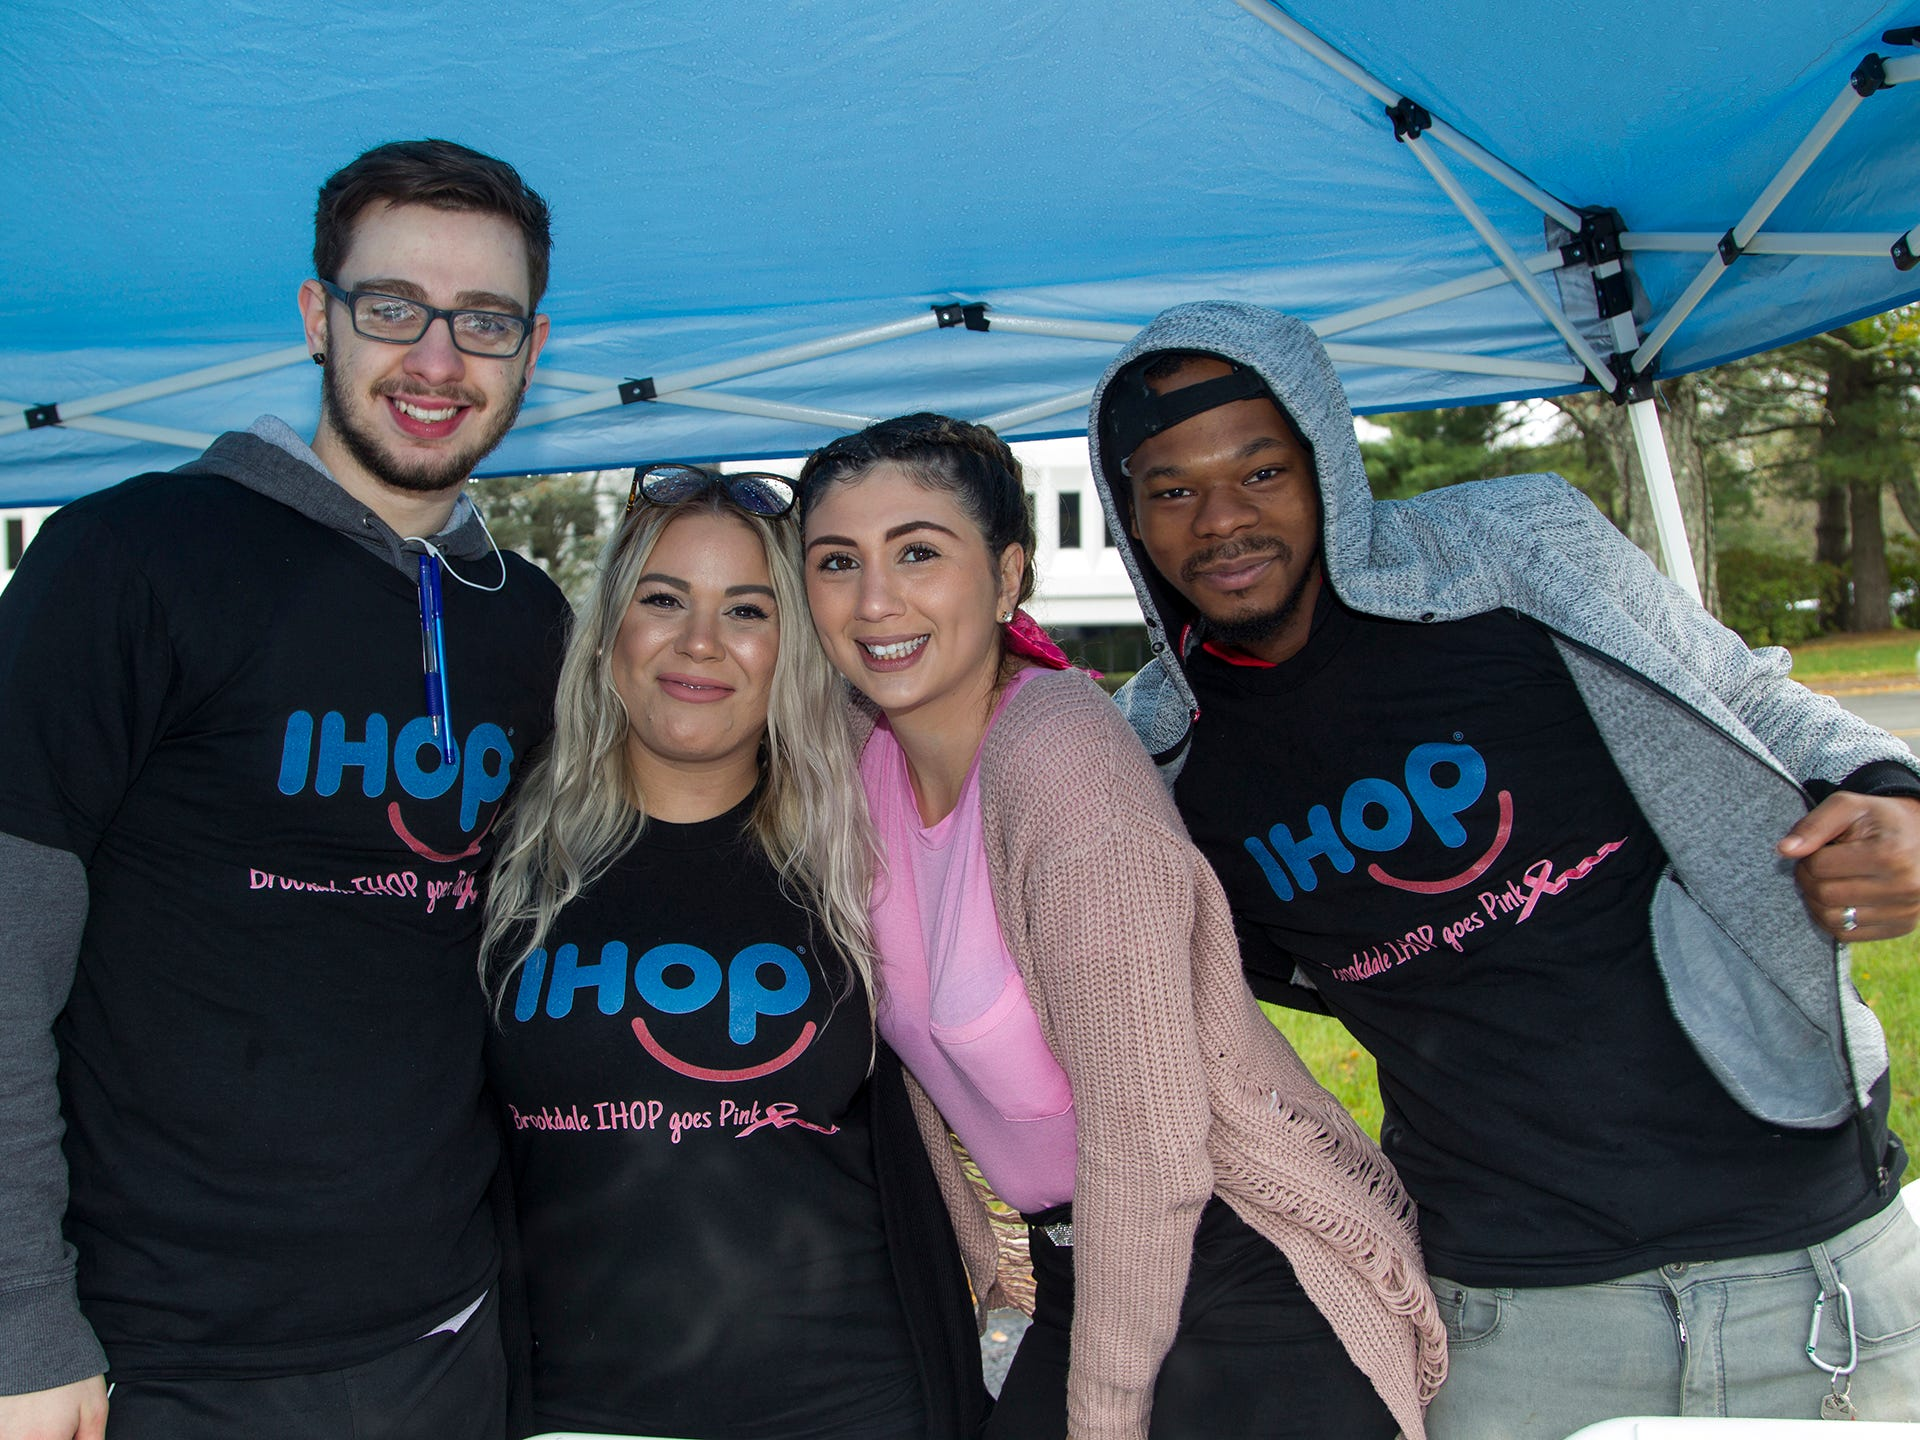 Matt Keller, Cheila Carabello, Brianna Siegel, Terelo Cooper. Valley National Bank held its 10th annual Breast Cancer Walk in Wayne. 10/13/2018